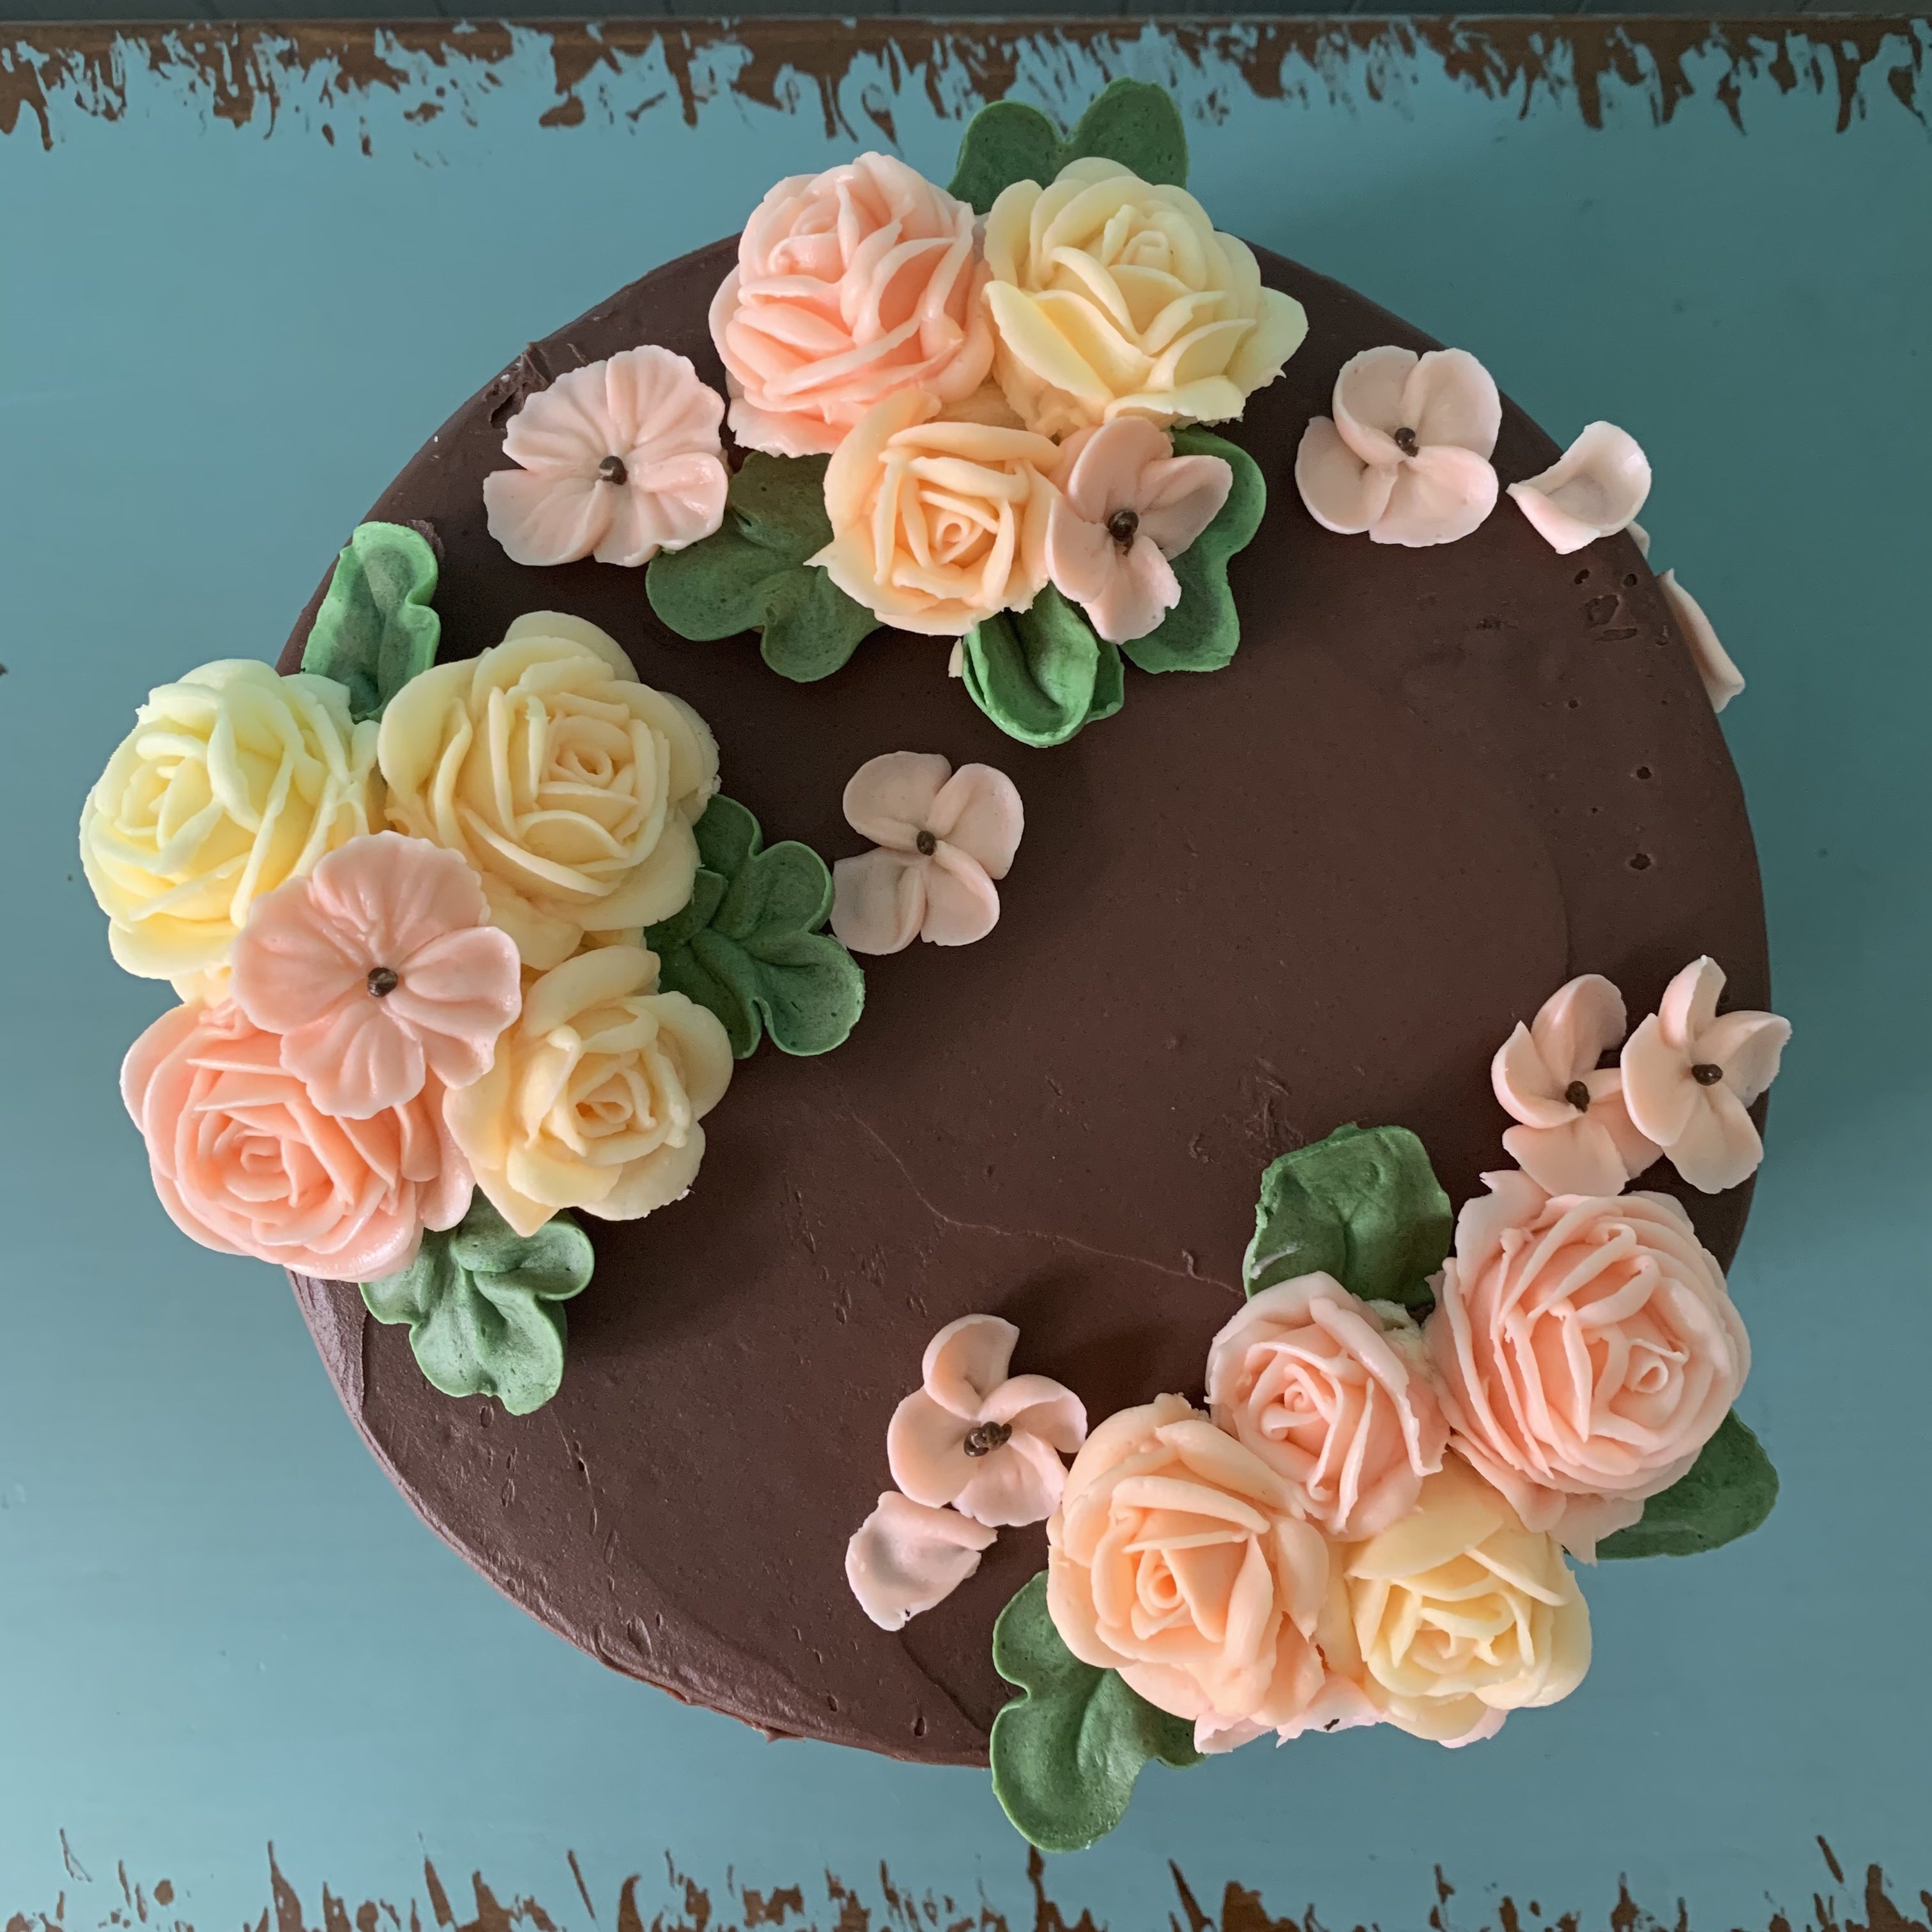 http://delicatelydelicious.com/wp-content/uploads/2019/05/Ganache-and-Florals-e1557244538323.jpg